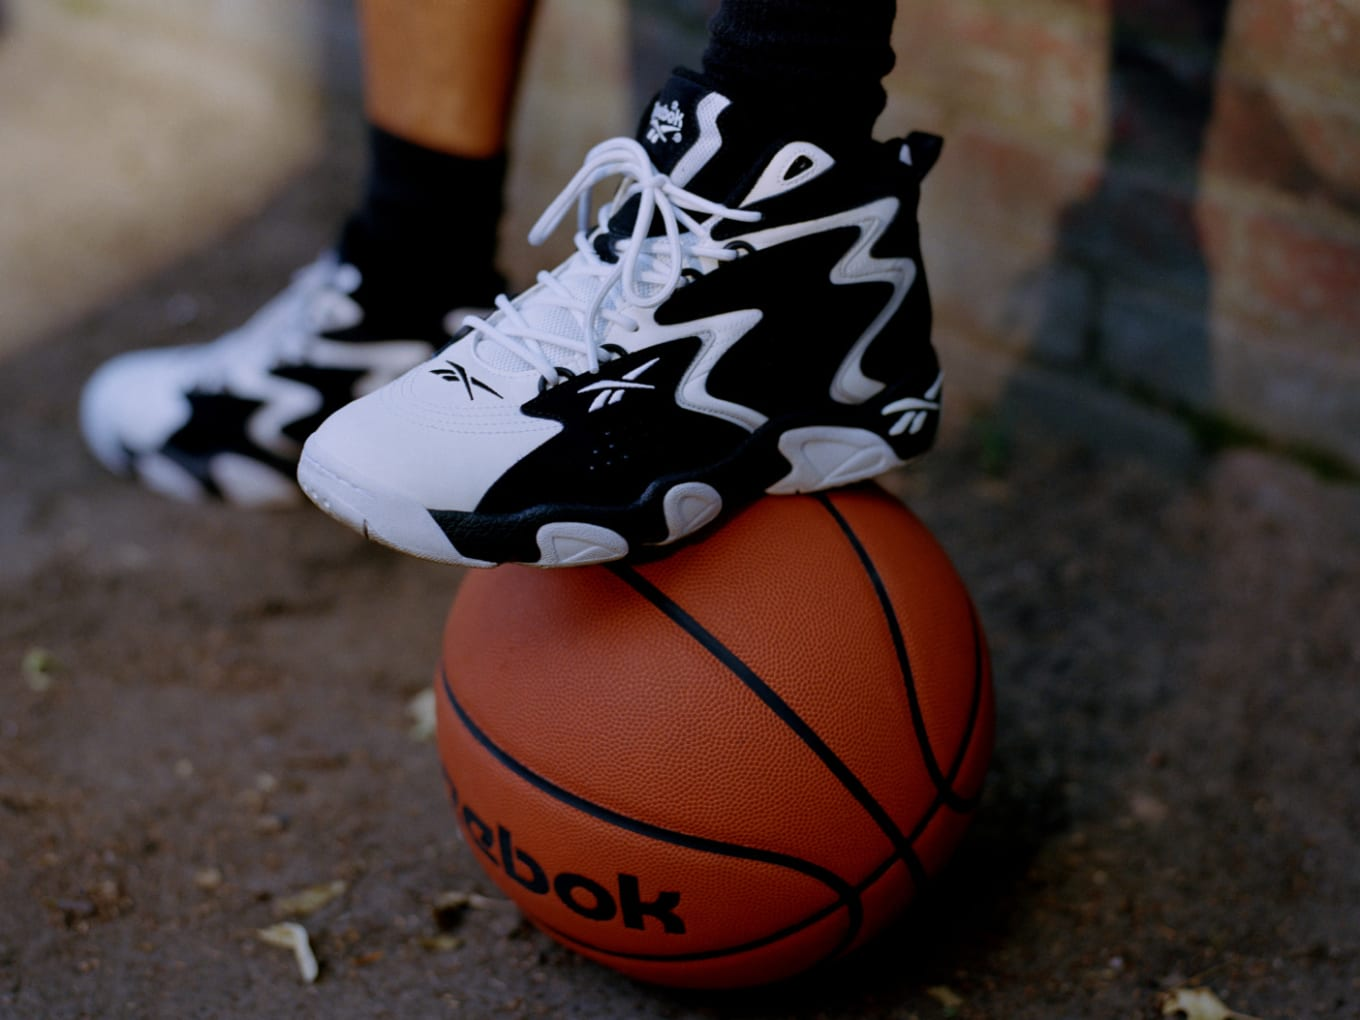 New Og Mobius SilhouetteSole Basketball Reebok Presents Collector nkXO0wP8NZ